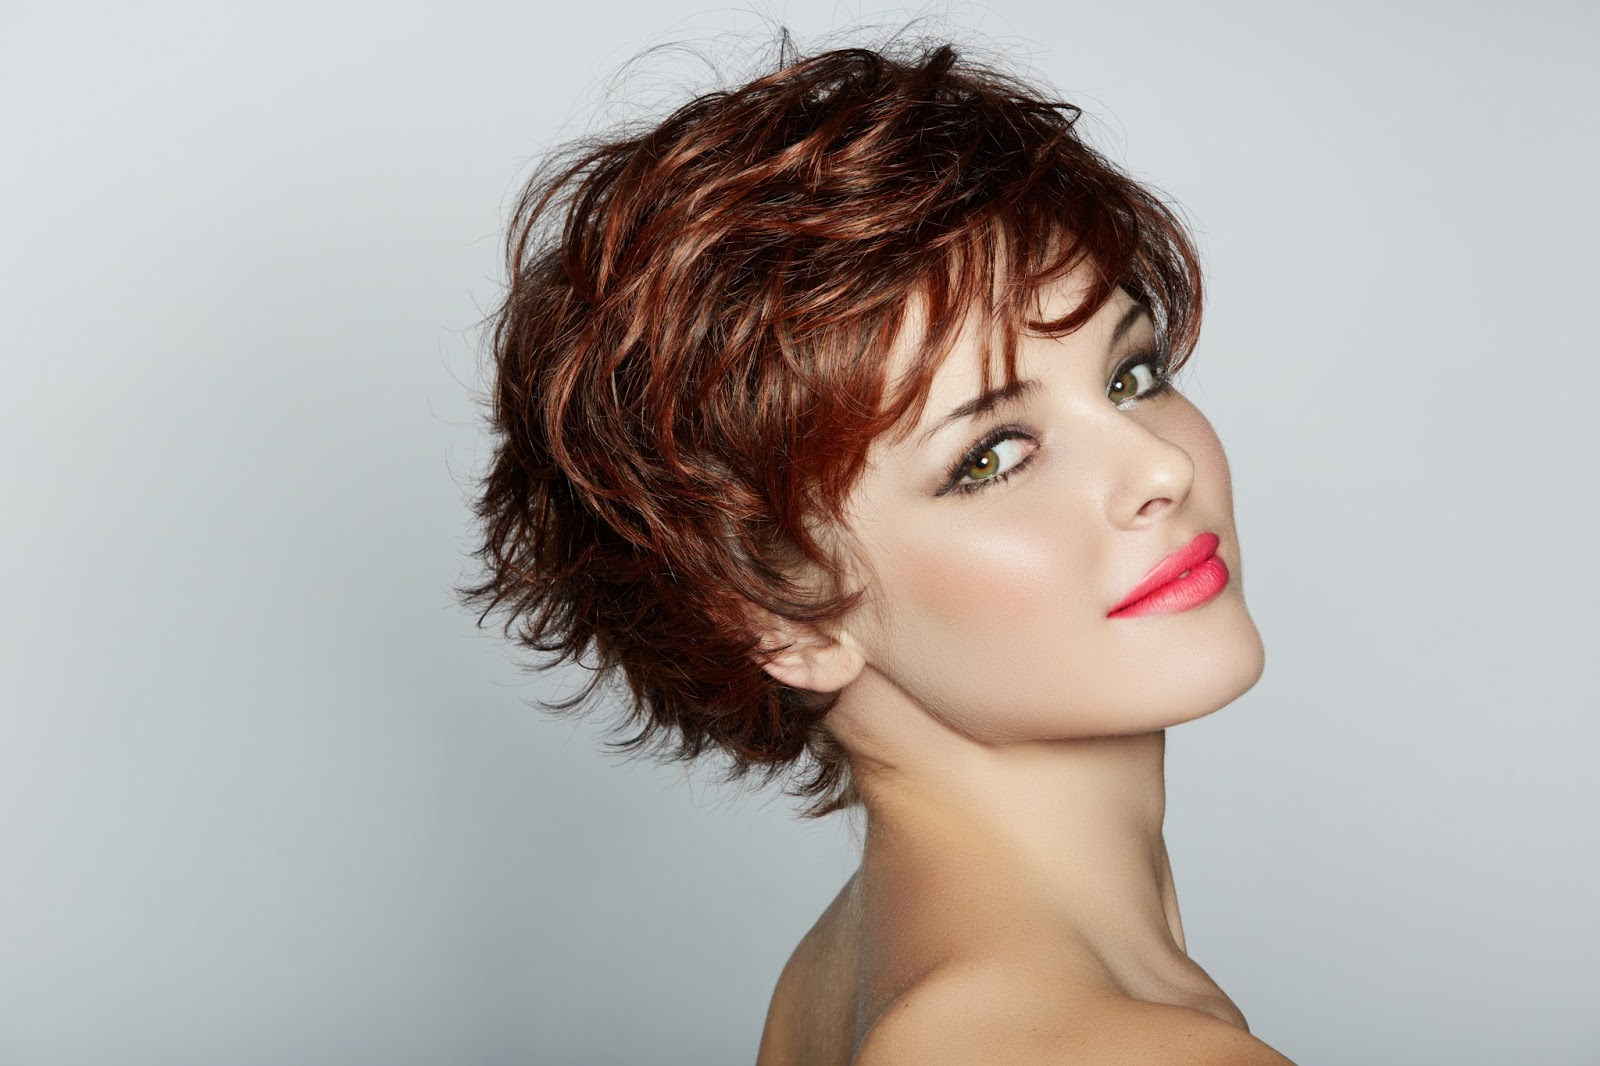 Hairstyles For Thin Hair 39 Hairstyles That Add Volume Thickness